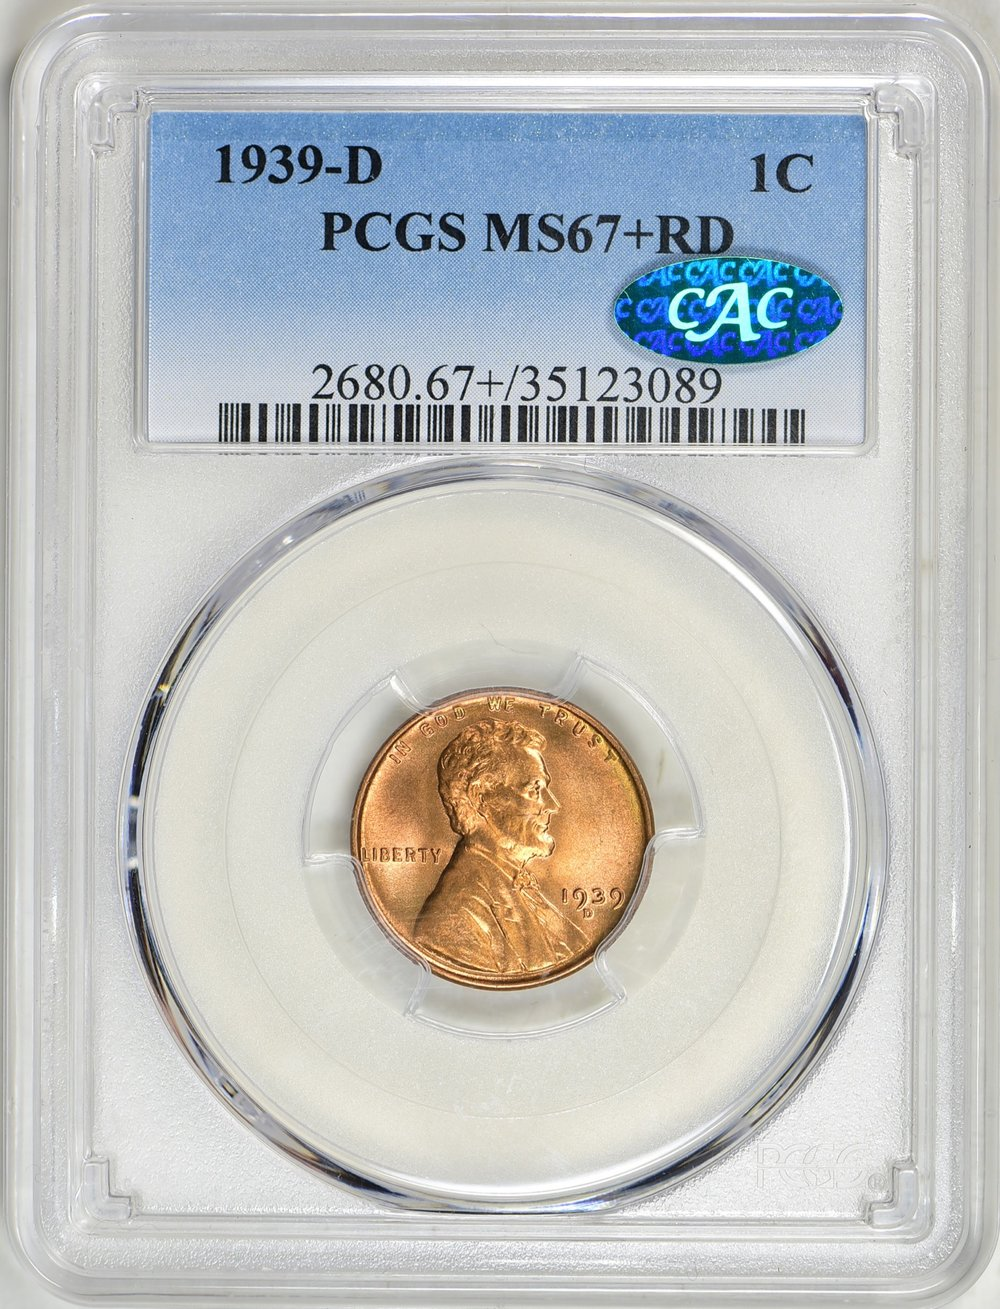 1939-D MS67+RD CAC - Acquired GreatCollections May 13, 2018. Replaces 67RD CAC OGH in The Christopher Collection.